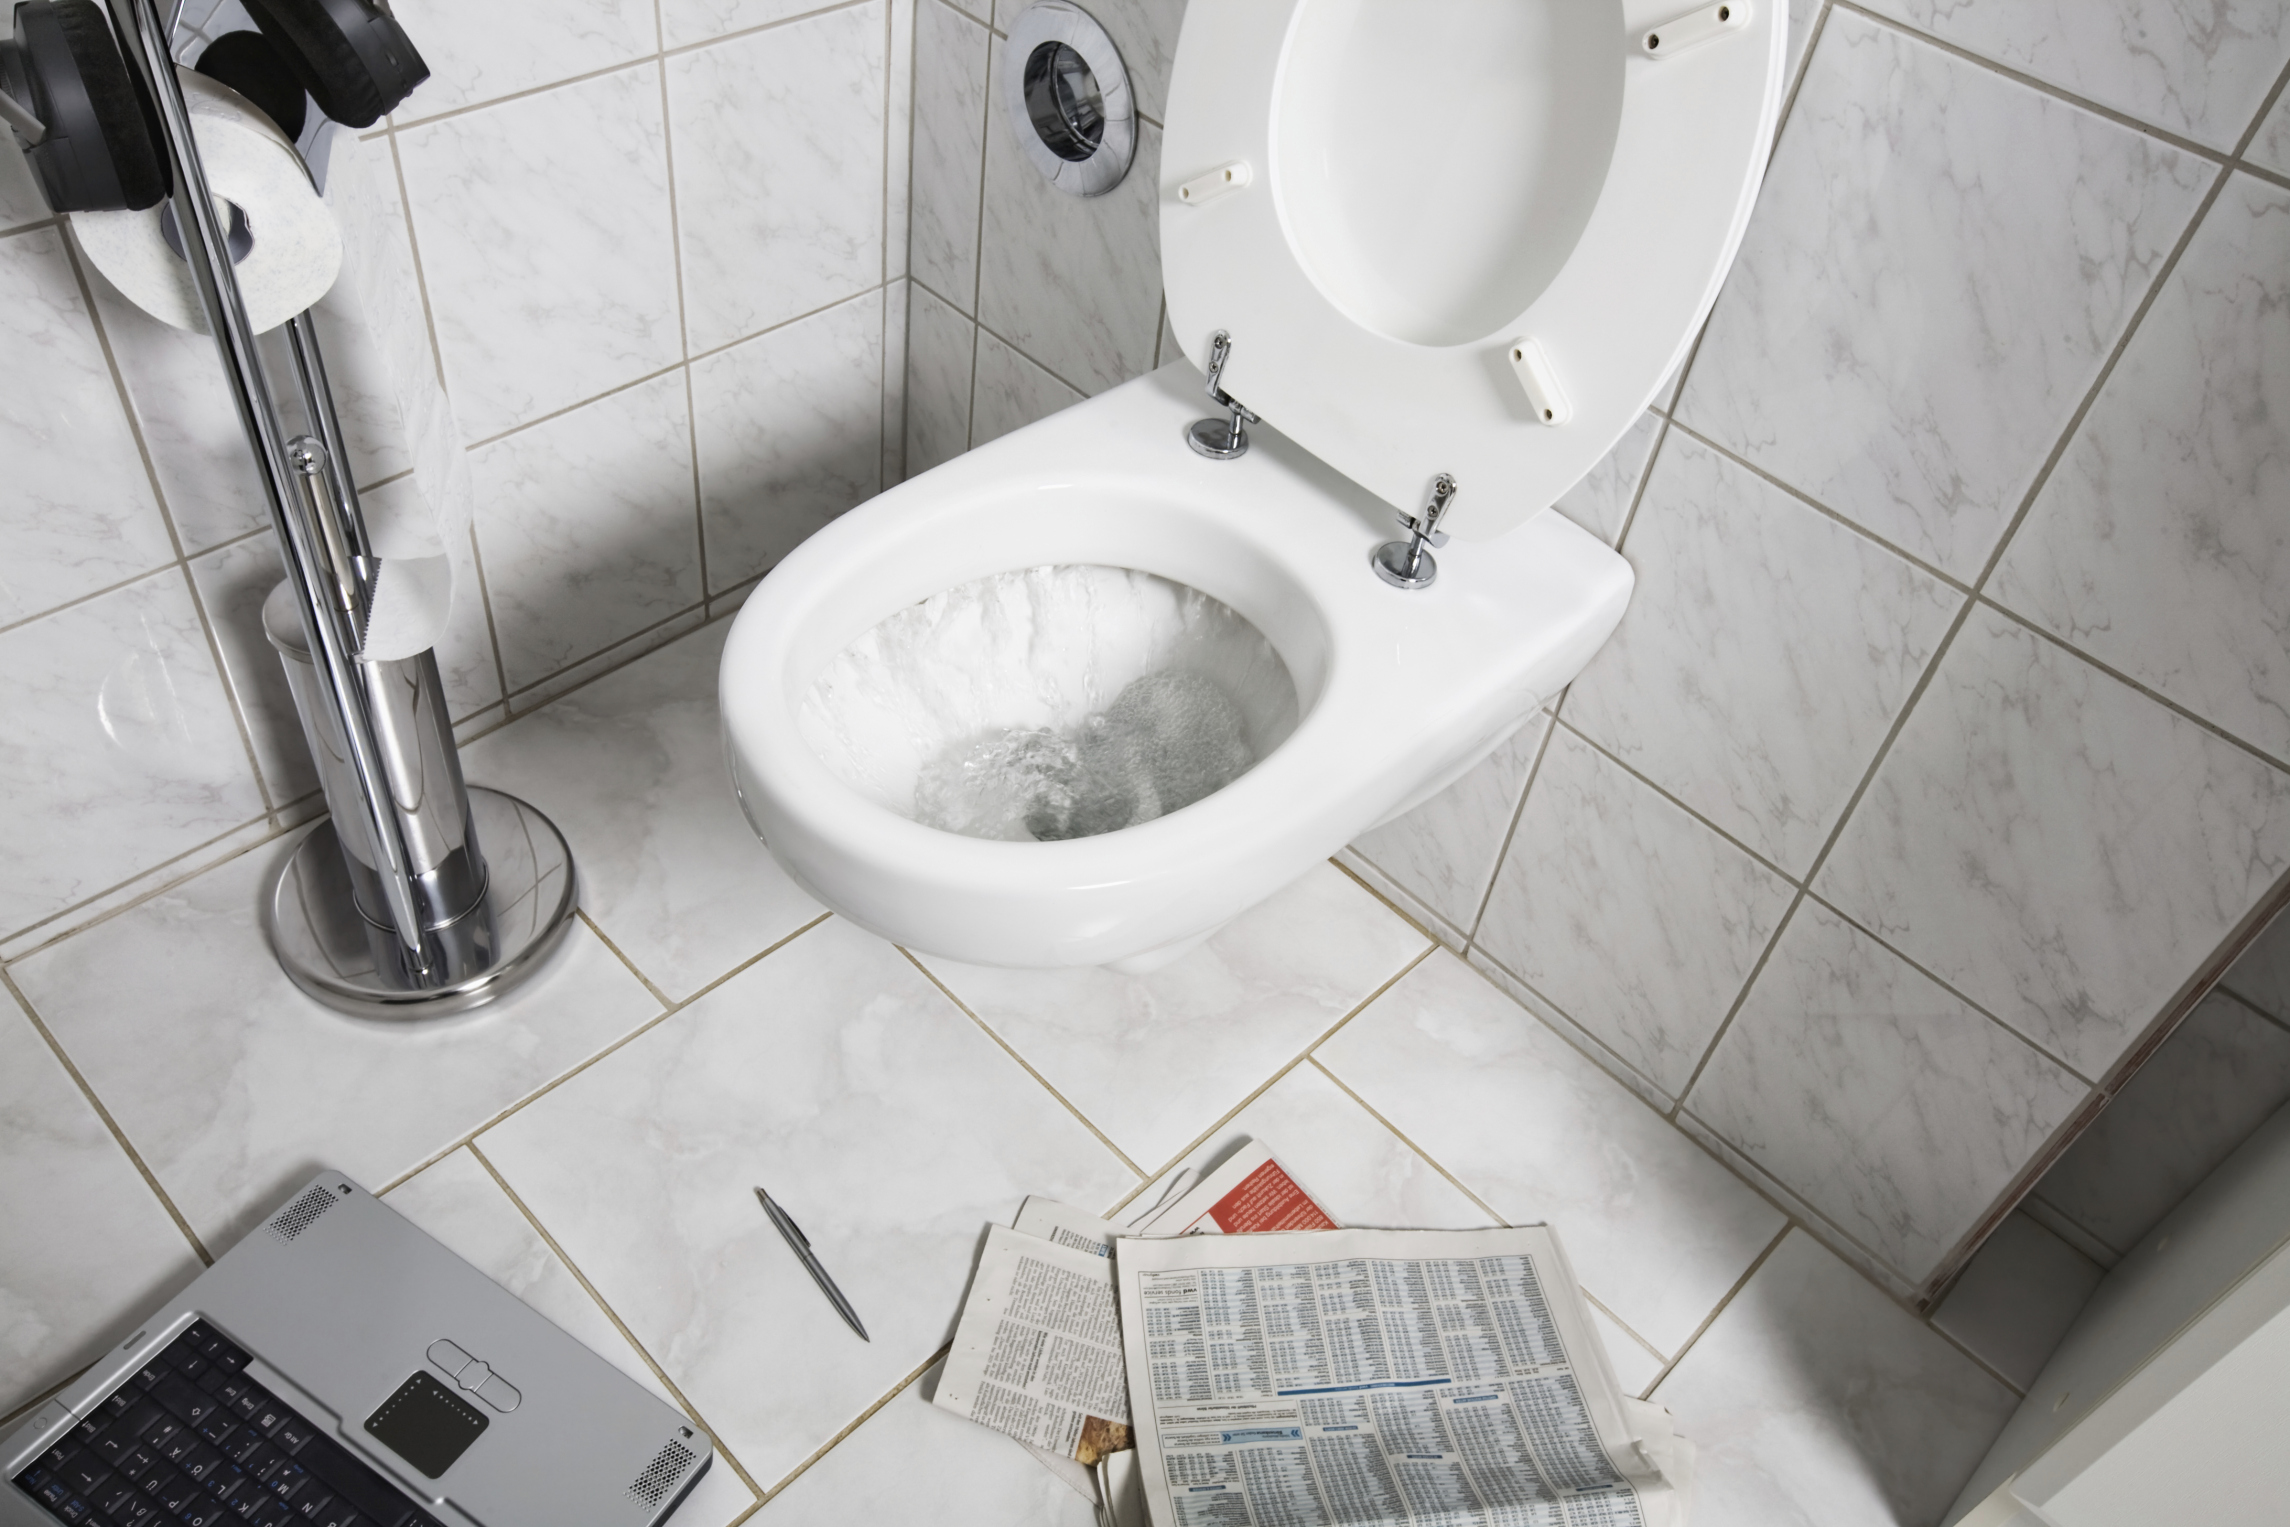 Boyfriend invents way to keep girlfriend from falling in toilet